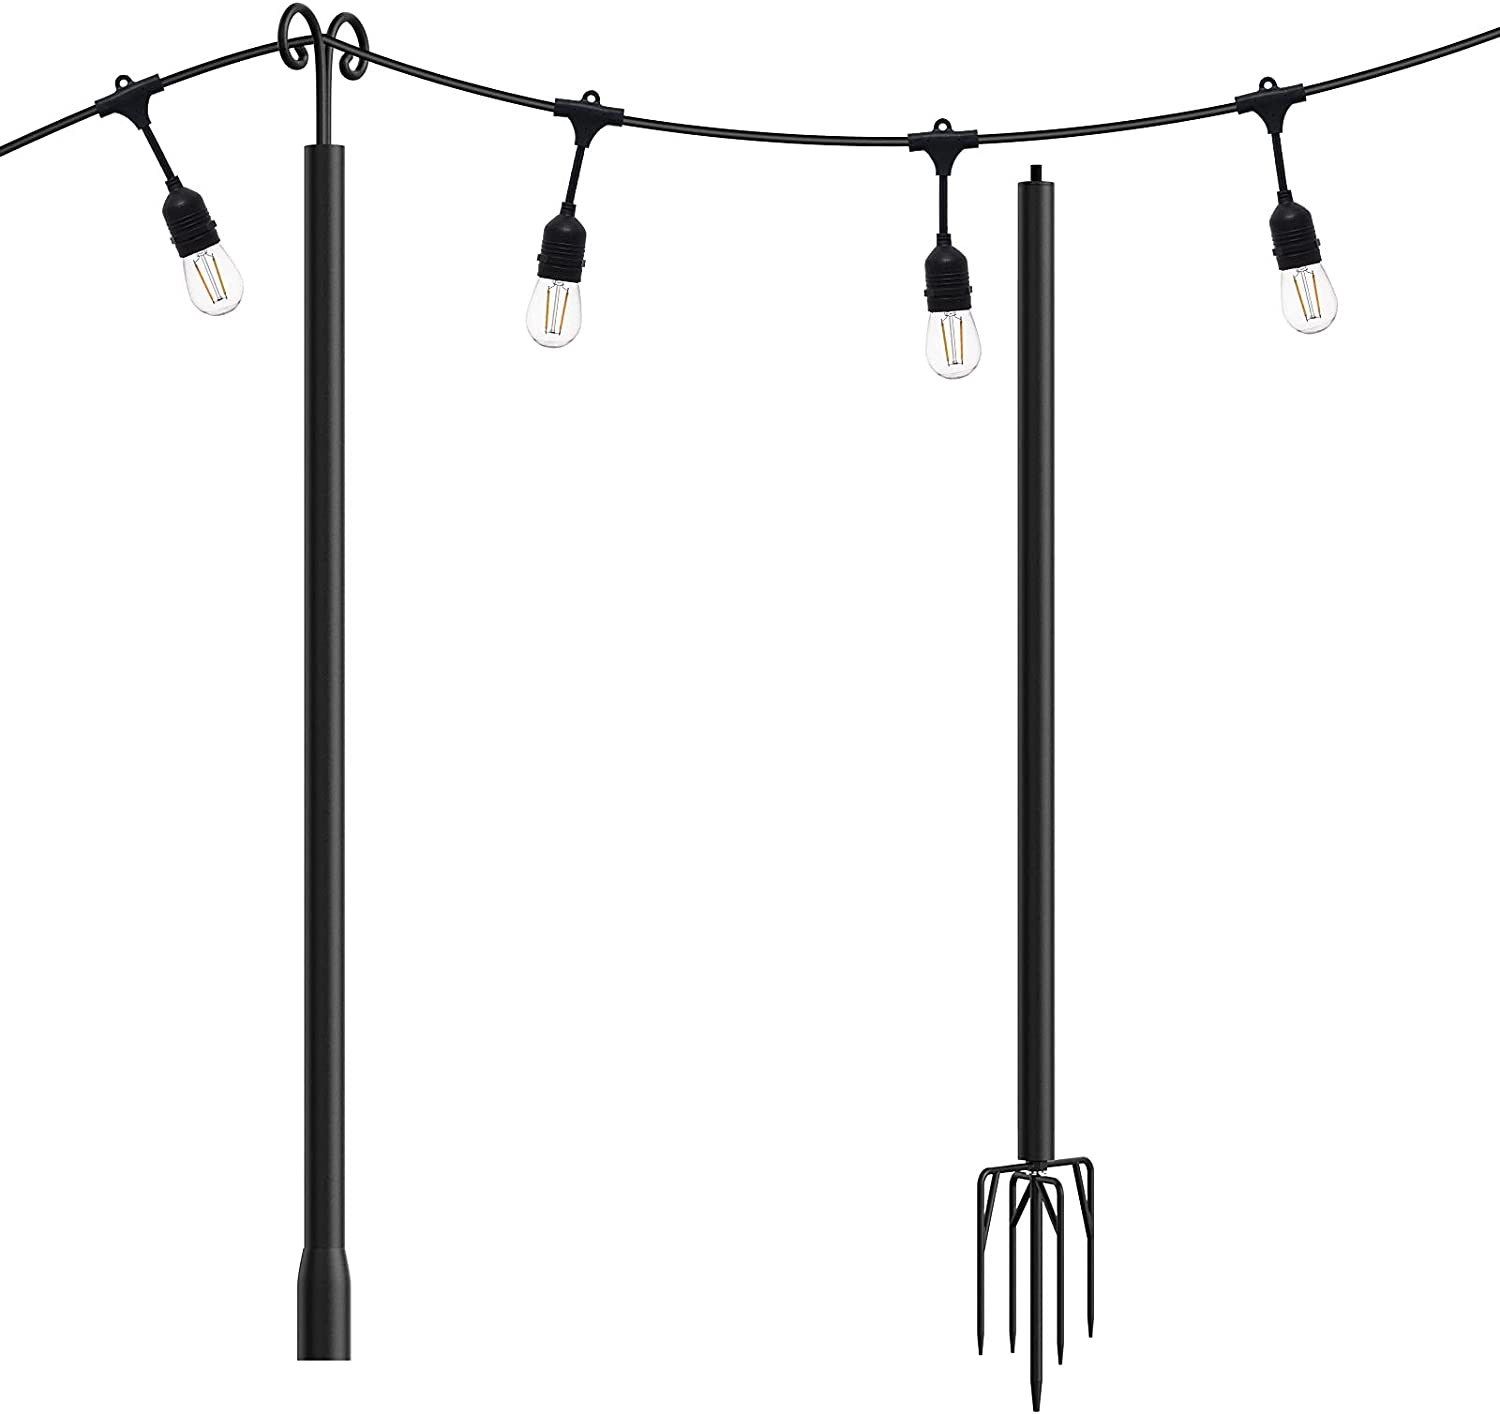 addlon String Lights Poles for Outdoors (1 x 10ft), Heavy Duty Designed to Use Year-Round for Your Garden, Patio, Wedding, Party, Birthday Decorations.